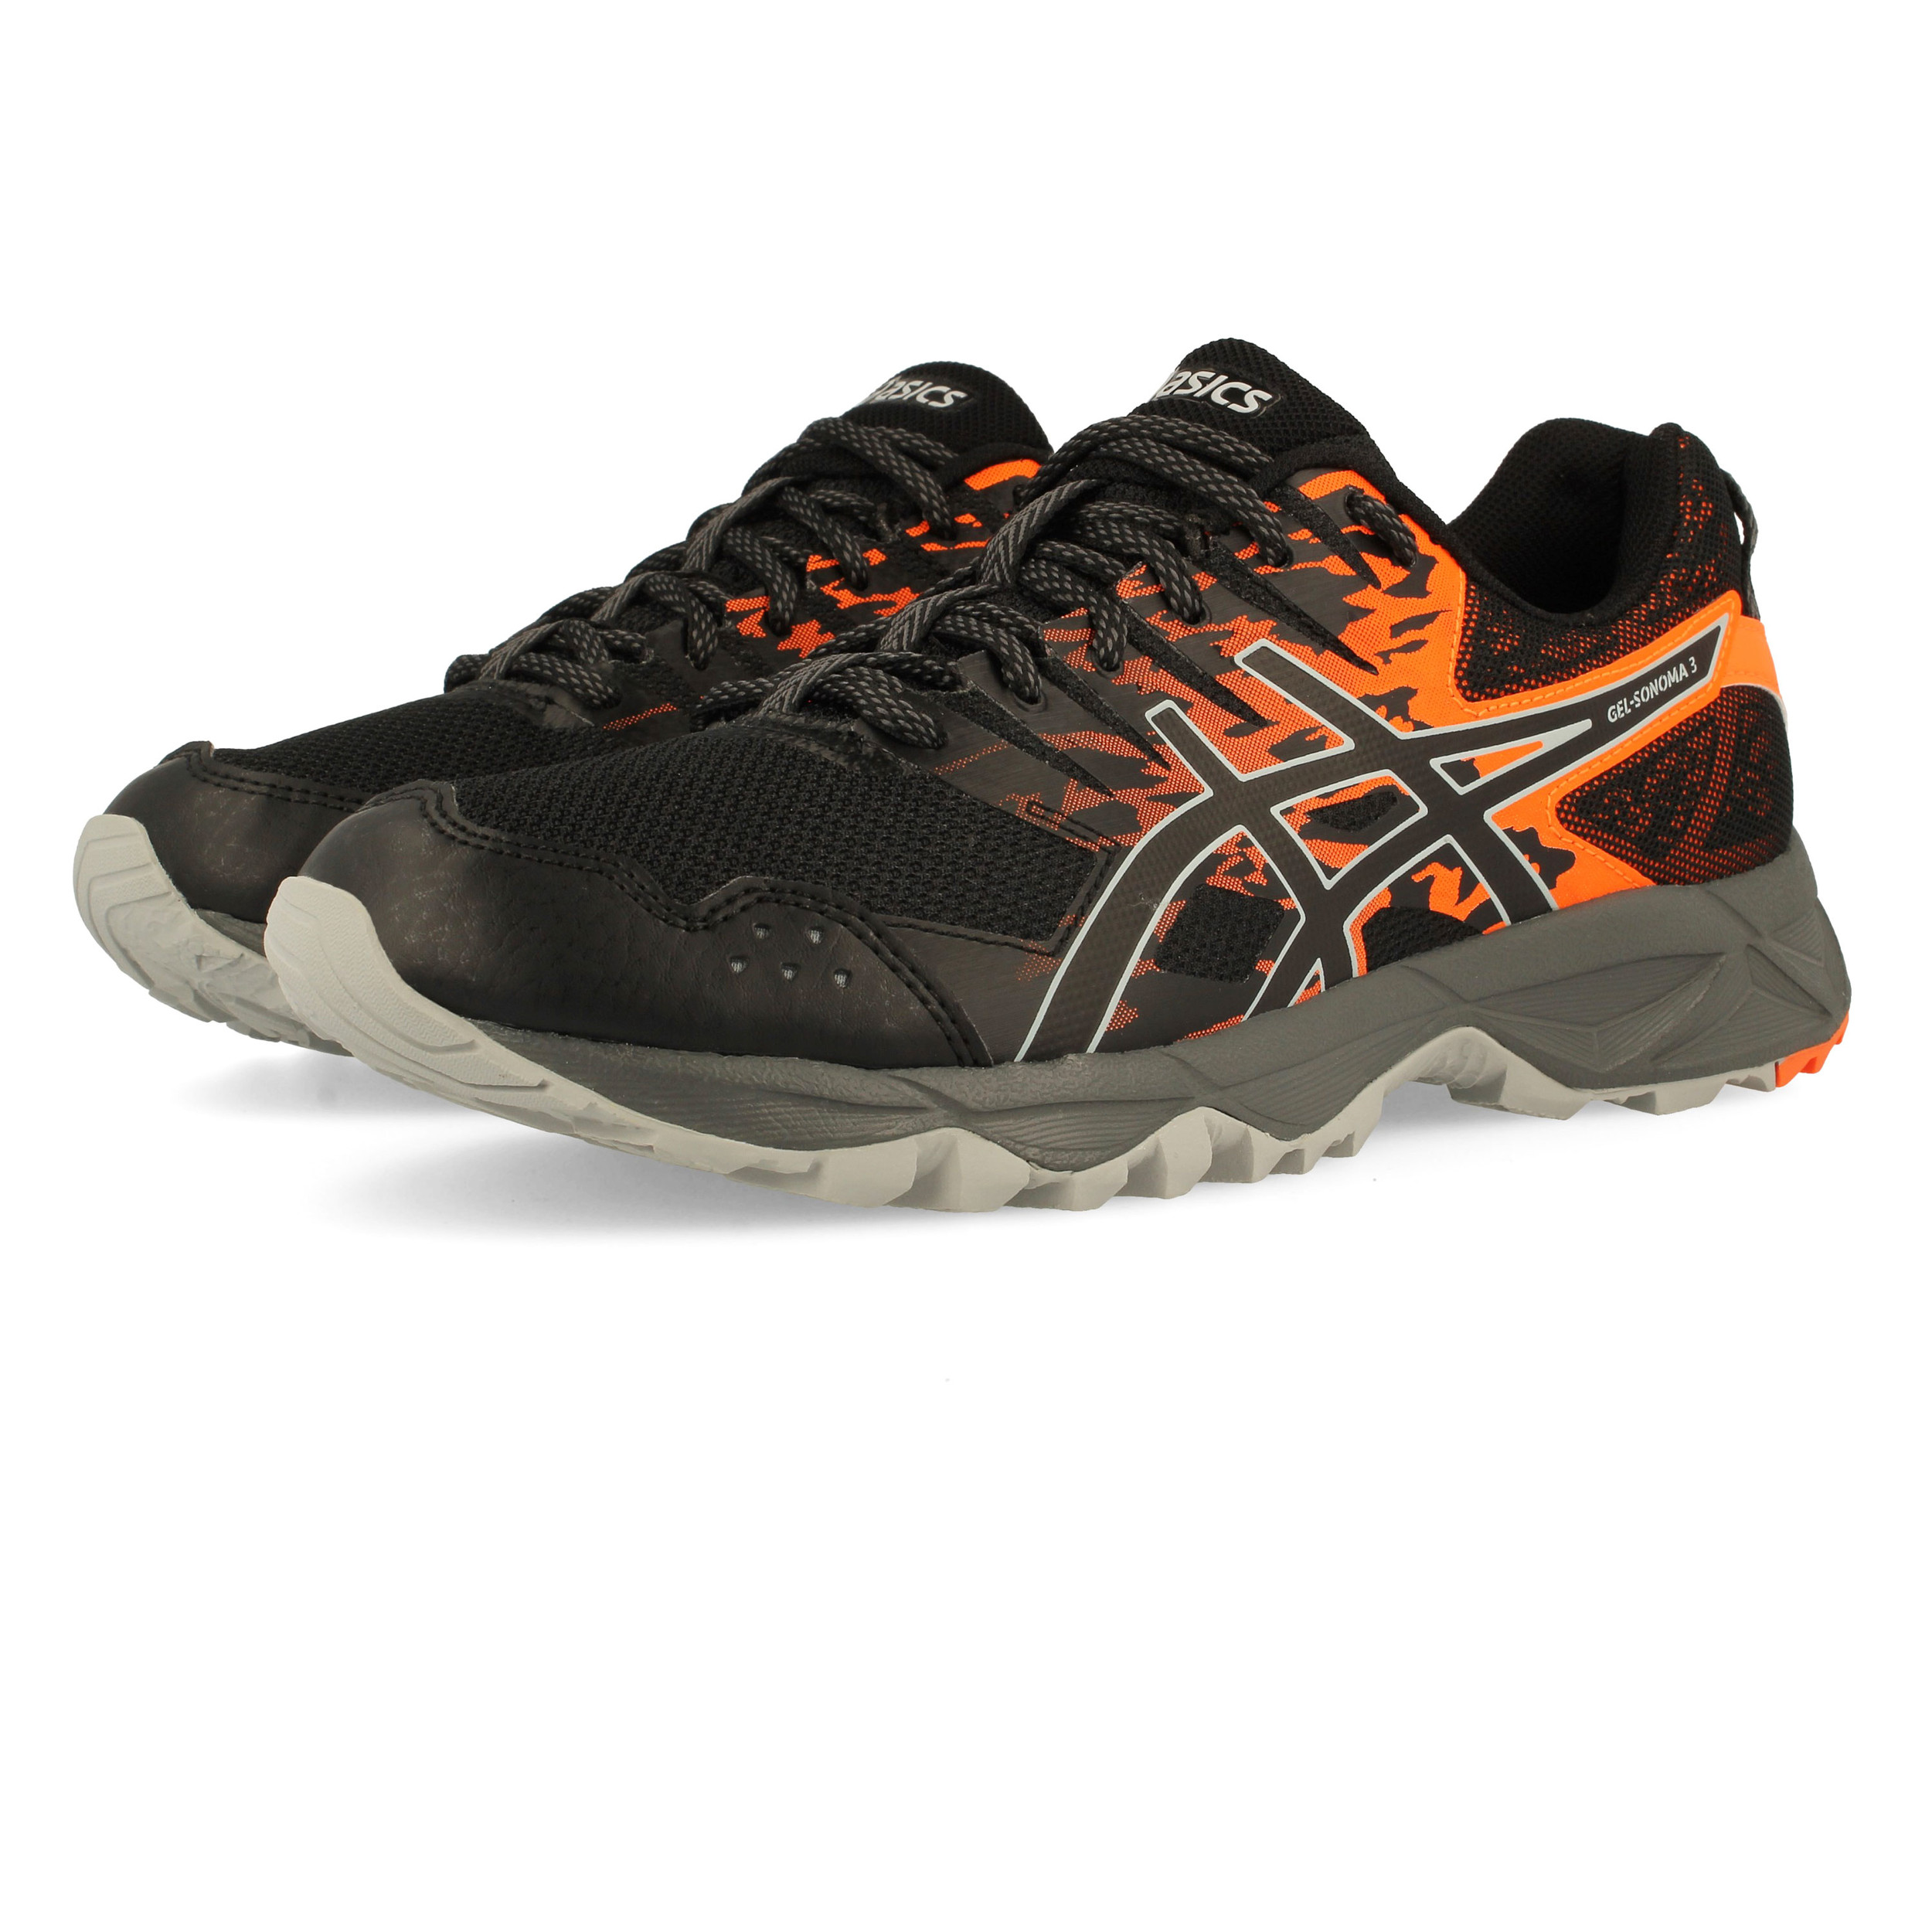 big sale b8bd6 405e4 Details about Asics Mens Gel-Sonoma 3 Trail Running Shoes Trainers Sneakers  Black Orange